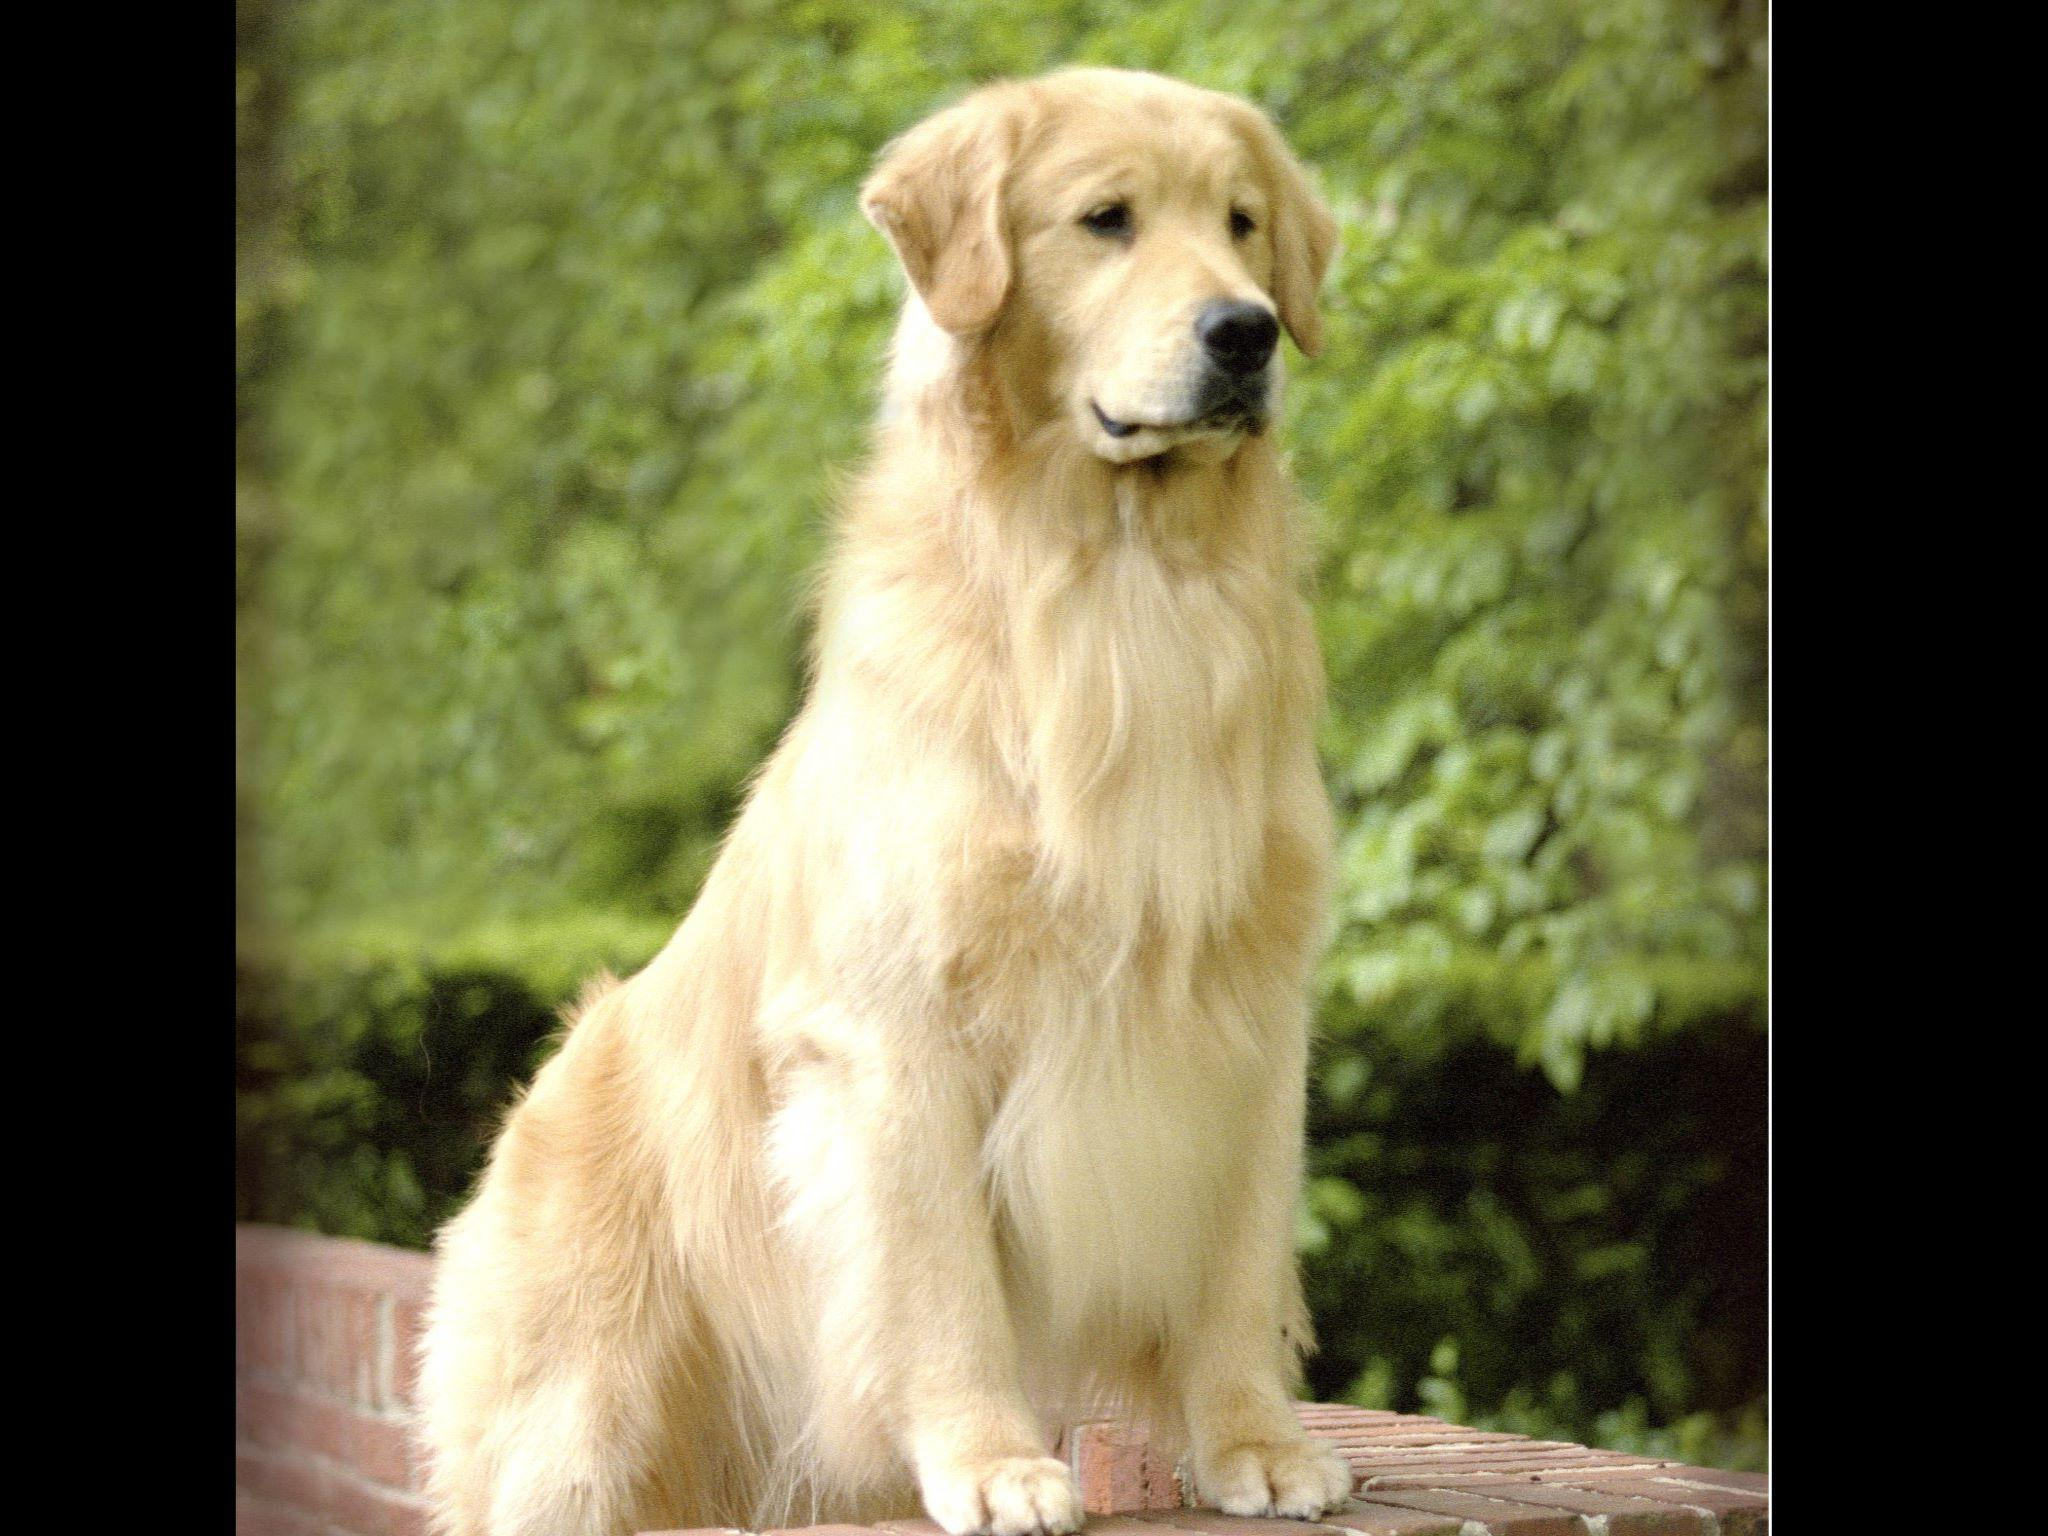 Asterling Golden Retrievers - Puppies For Sale